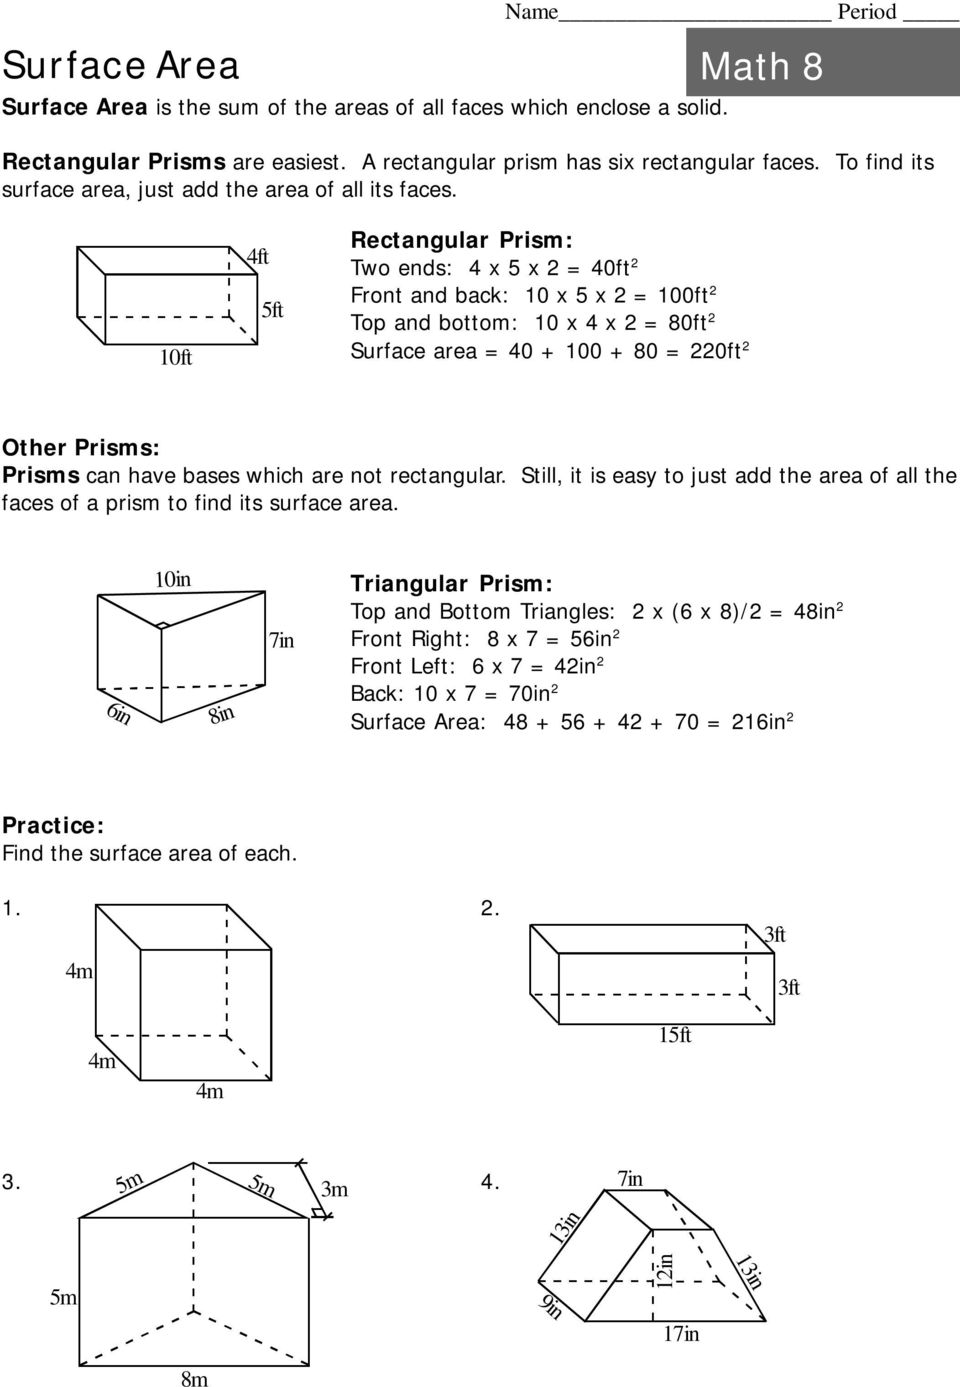 10ft 4ft 5ft Rectangular Prism: Two ends: 4 x 5 x = 40ft Front and back: 10 x 5 x = 100ft Top and bottom: 10 x 4 x = 80ft Surface area = 40 + 100 + 80 = 0ft Other Prisms: Prisms can have bases which